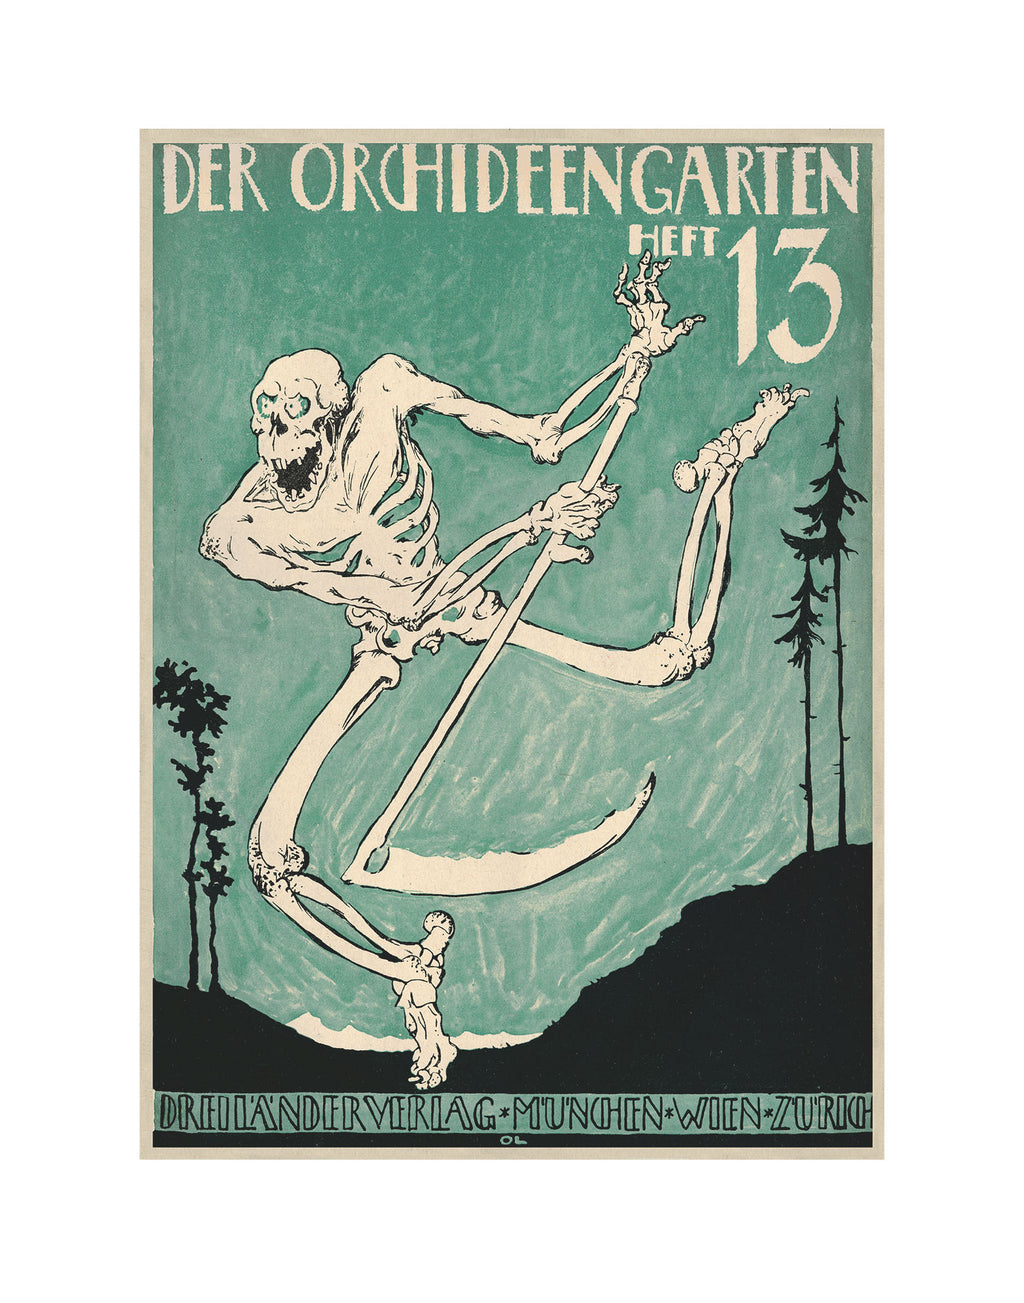 Der Orchideengarten Fantasy Sci Fi The Orchid Garden Occult Art